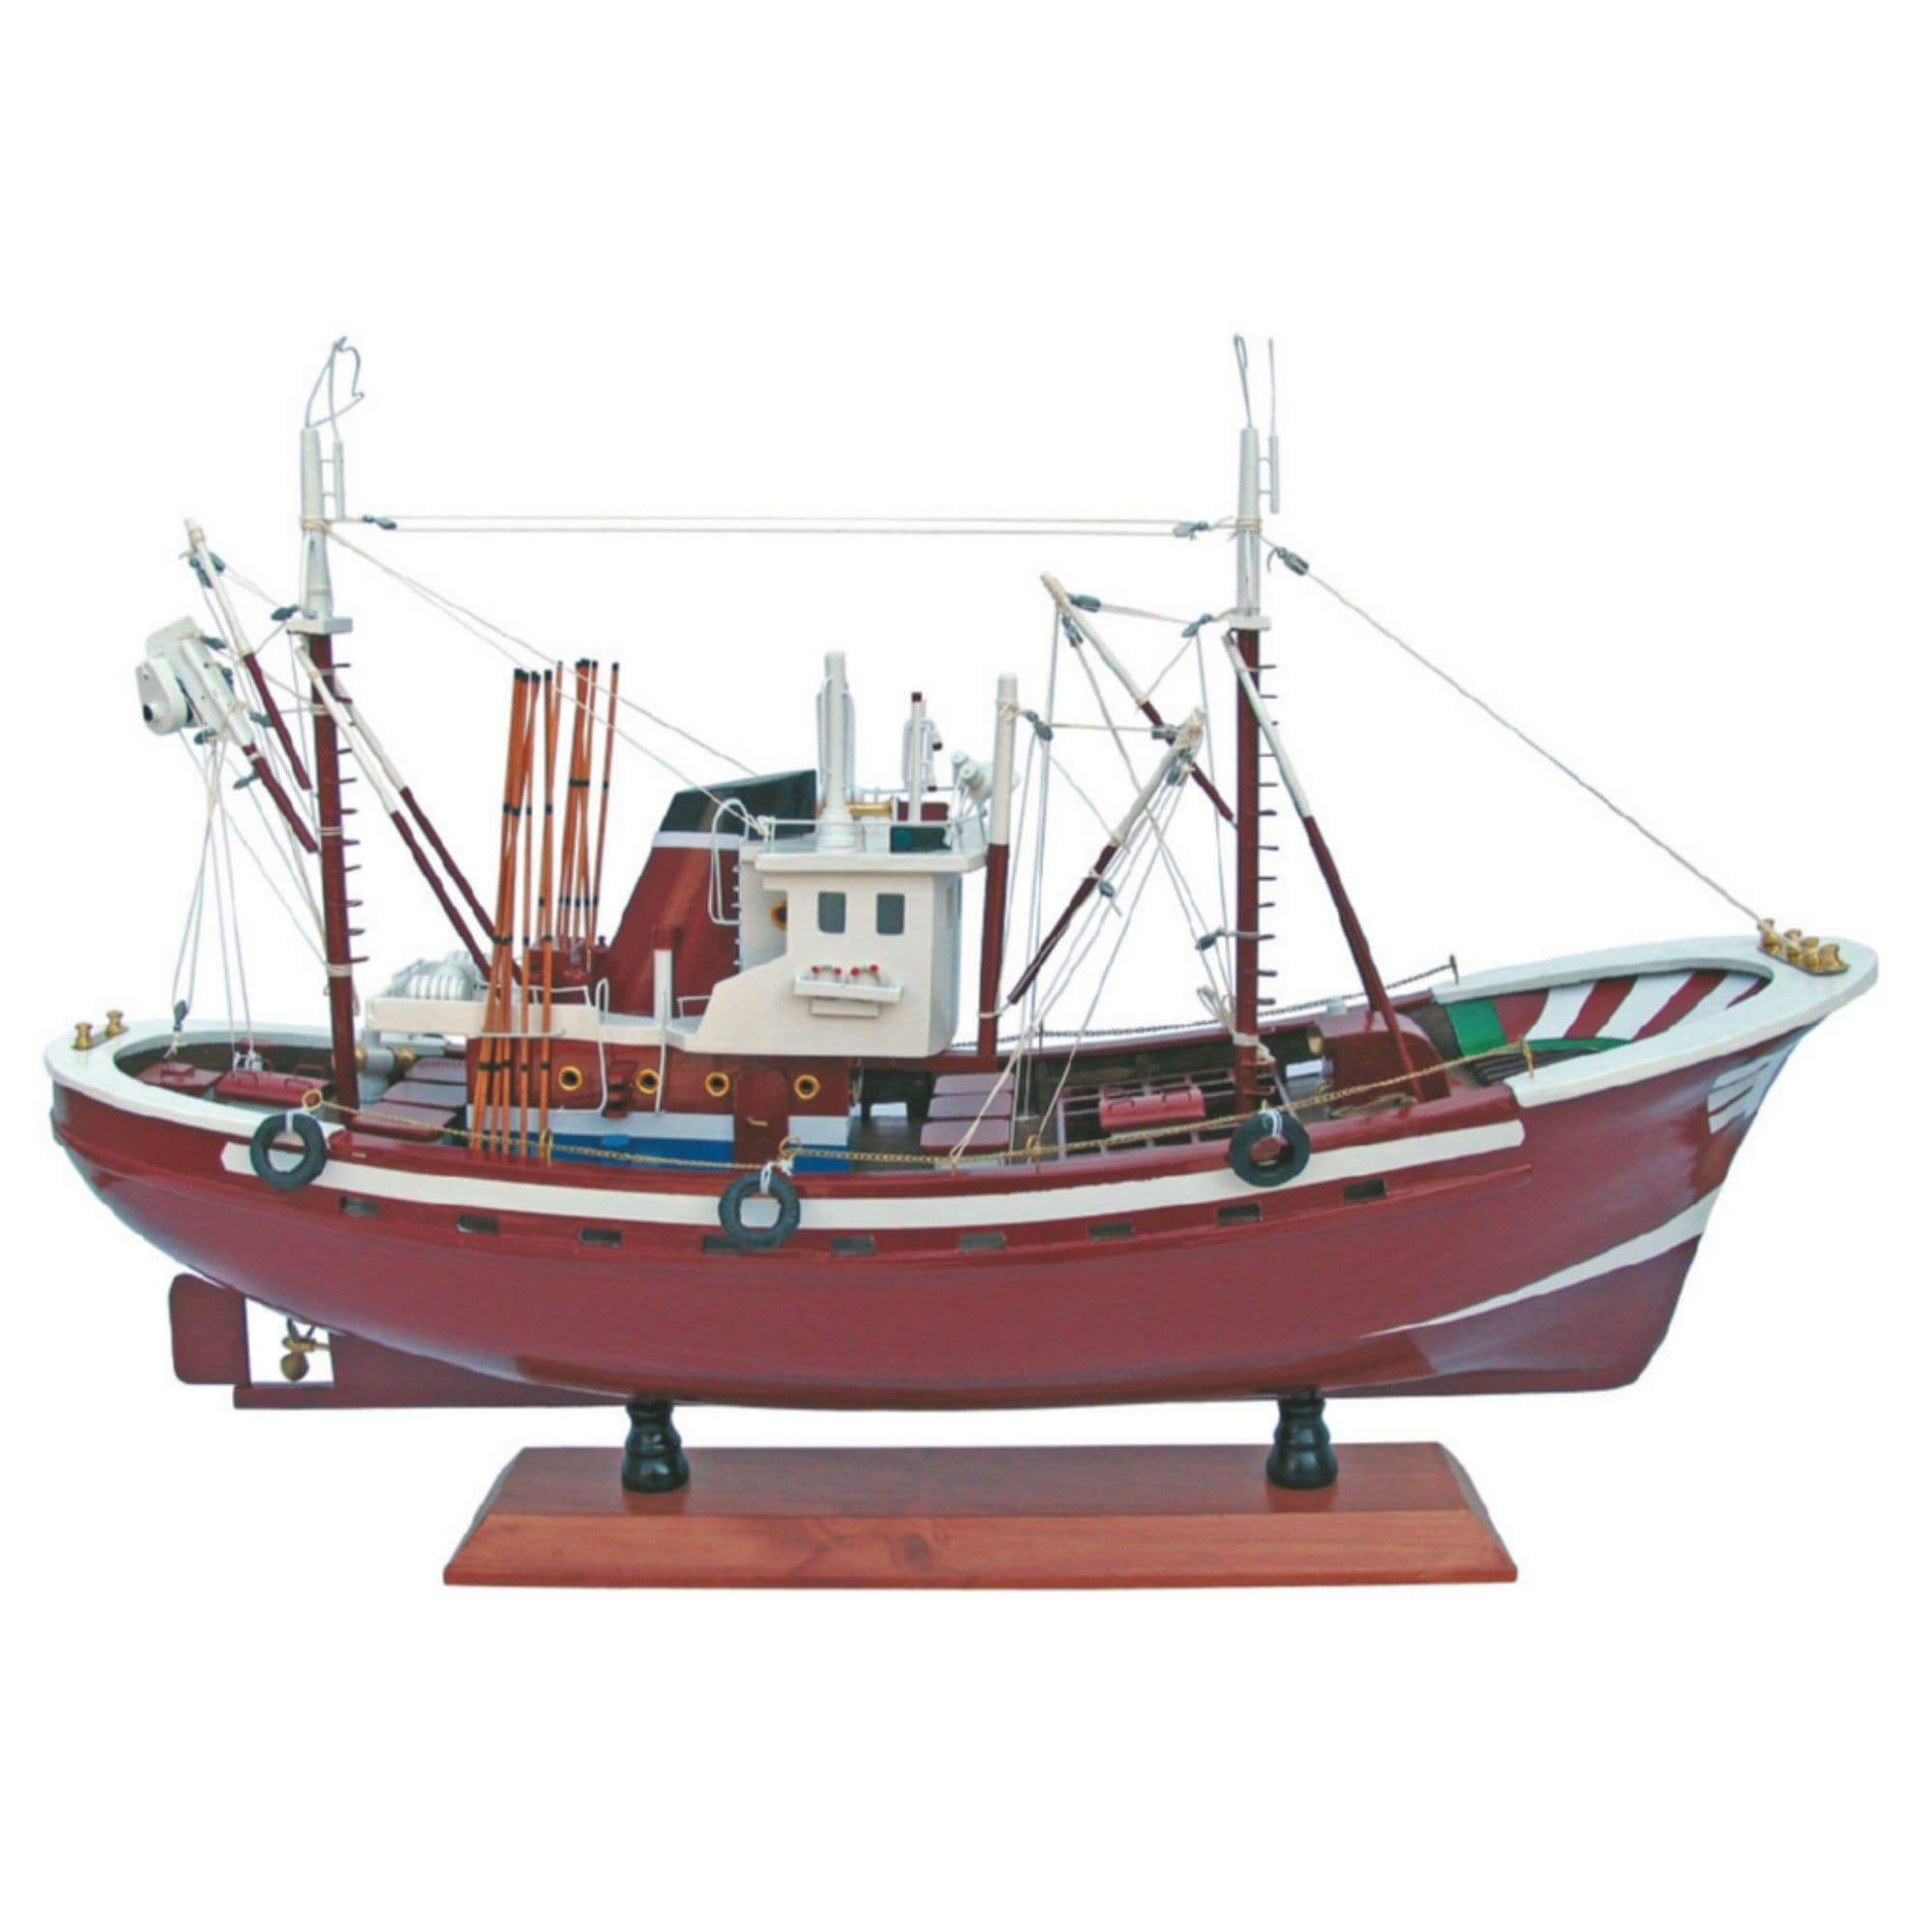 Batela Giftware-Fishing Boats-Large Tuna Fishing Boat in Red - Model Boat